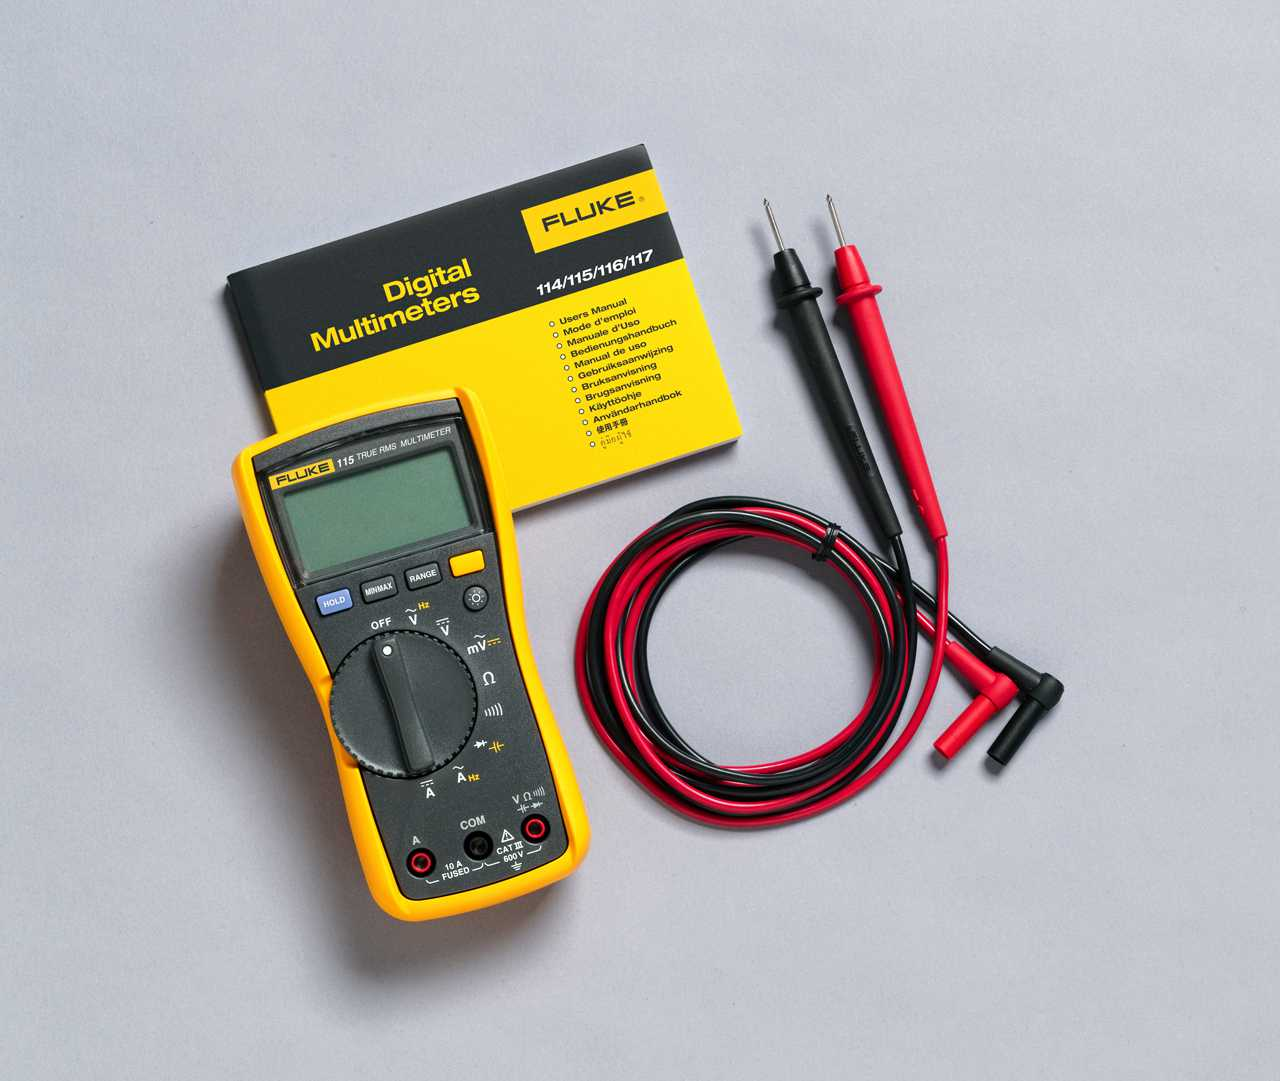 Fluke 115 TRMS Delivery Package